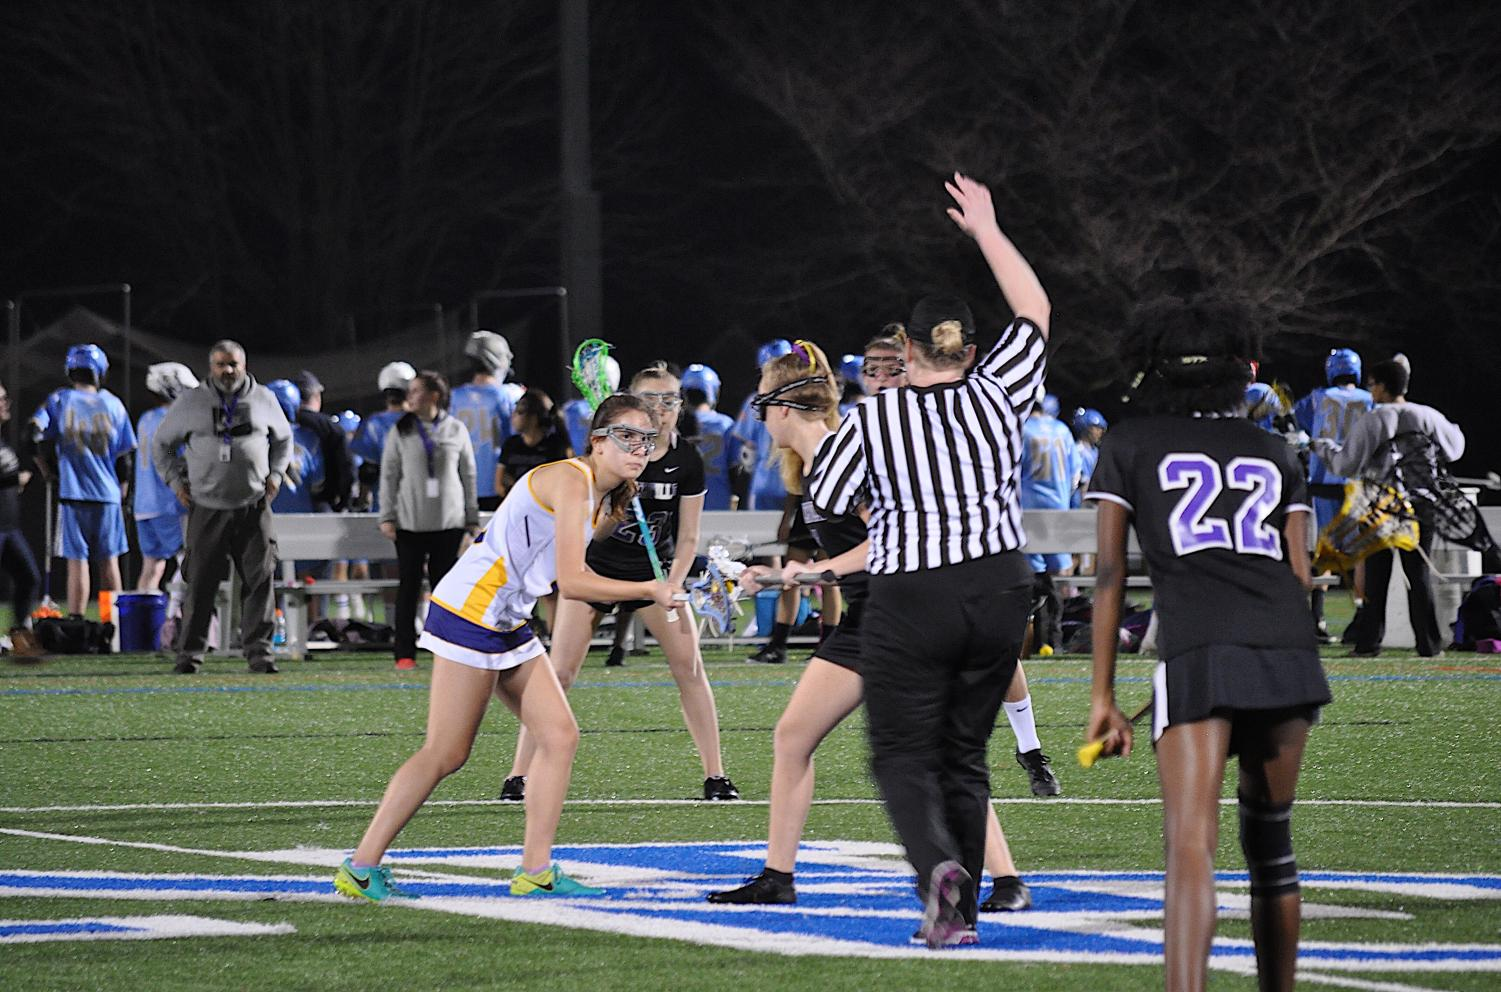 Junior midfielder Denitsa Dimitrova faces off against Menchville High School at Norfolk Collegiate on March 15.